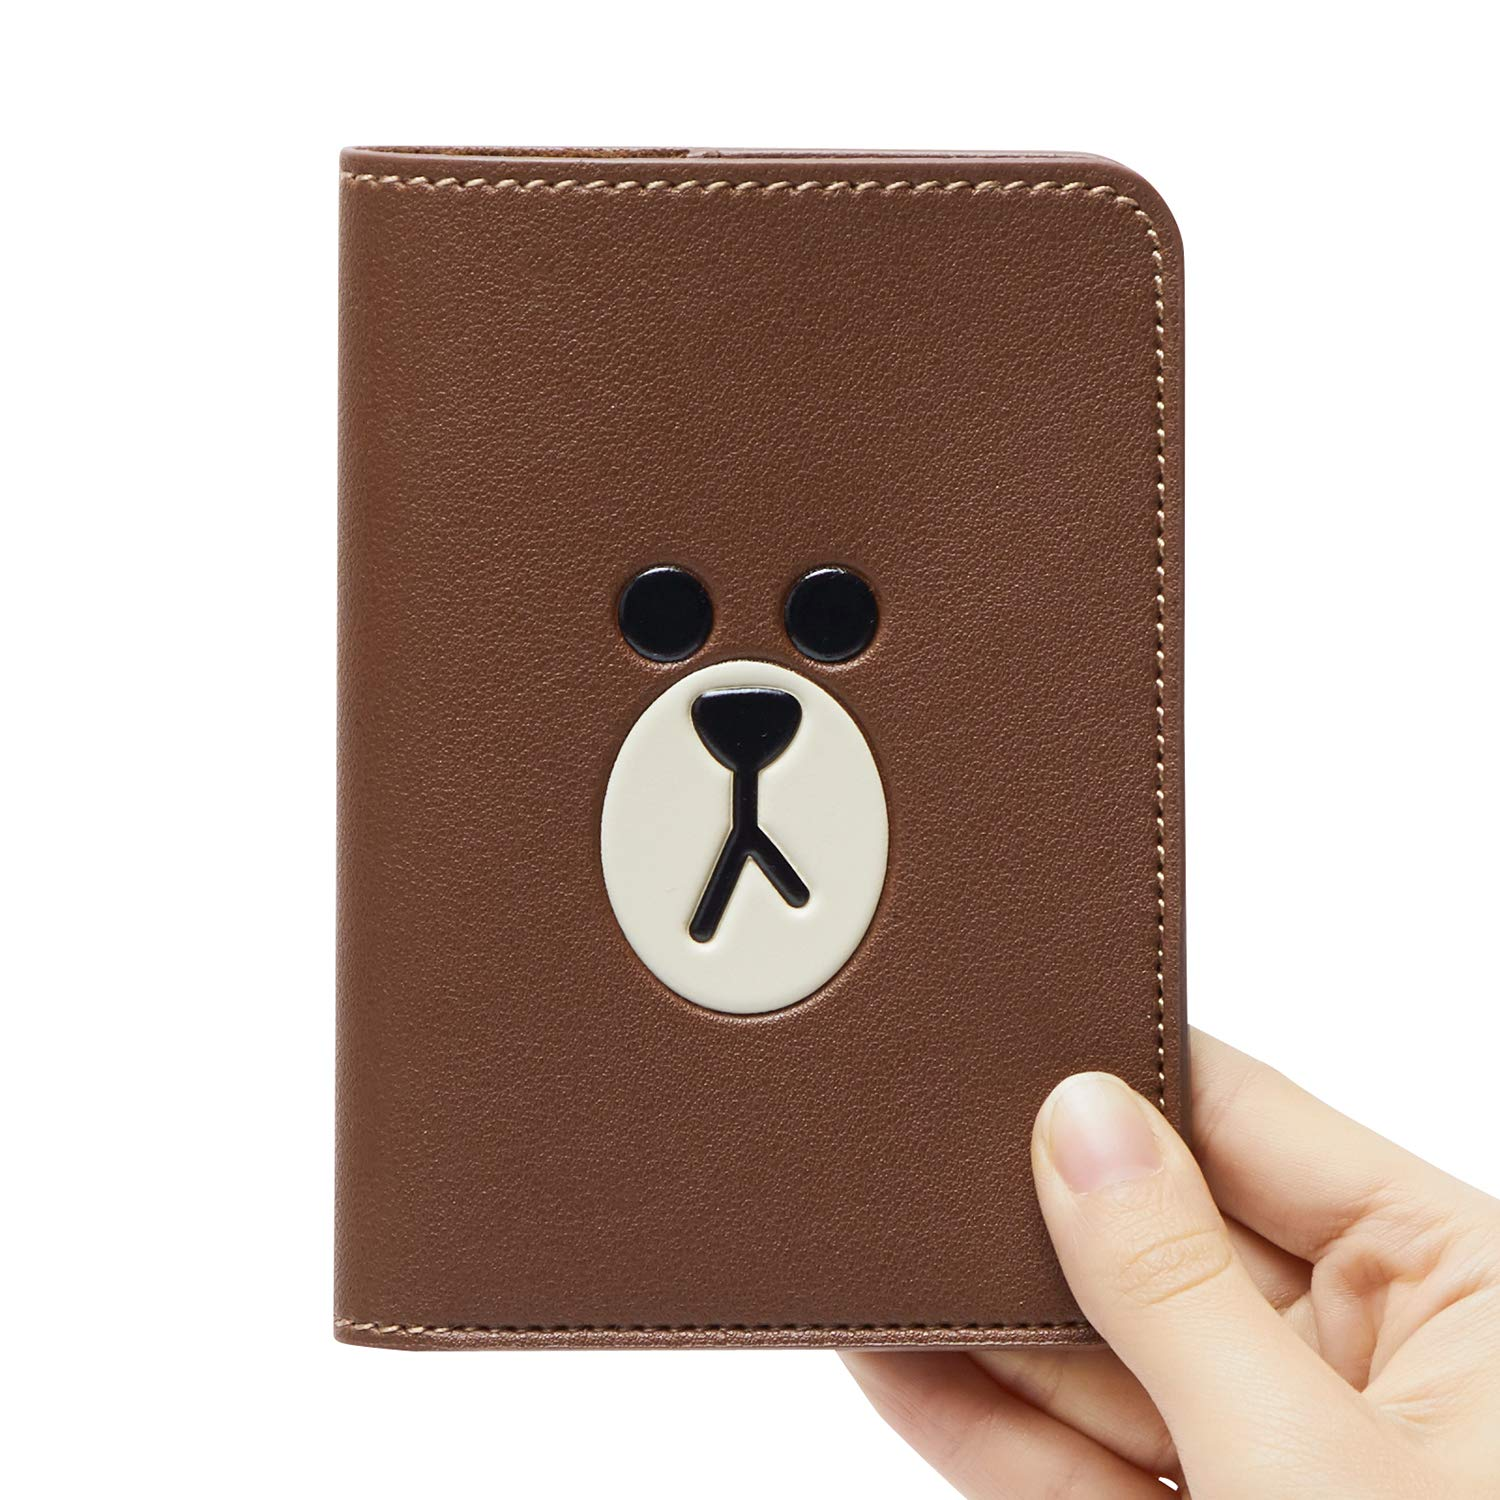 3de2533b2f86 Line Friends Passport Holder Wallet - BROWN Character Faux Leather Cover  Accessory for Travel, Brown